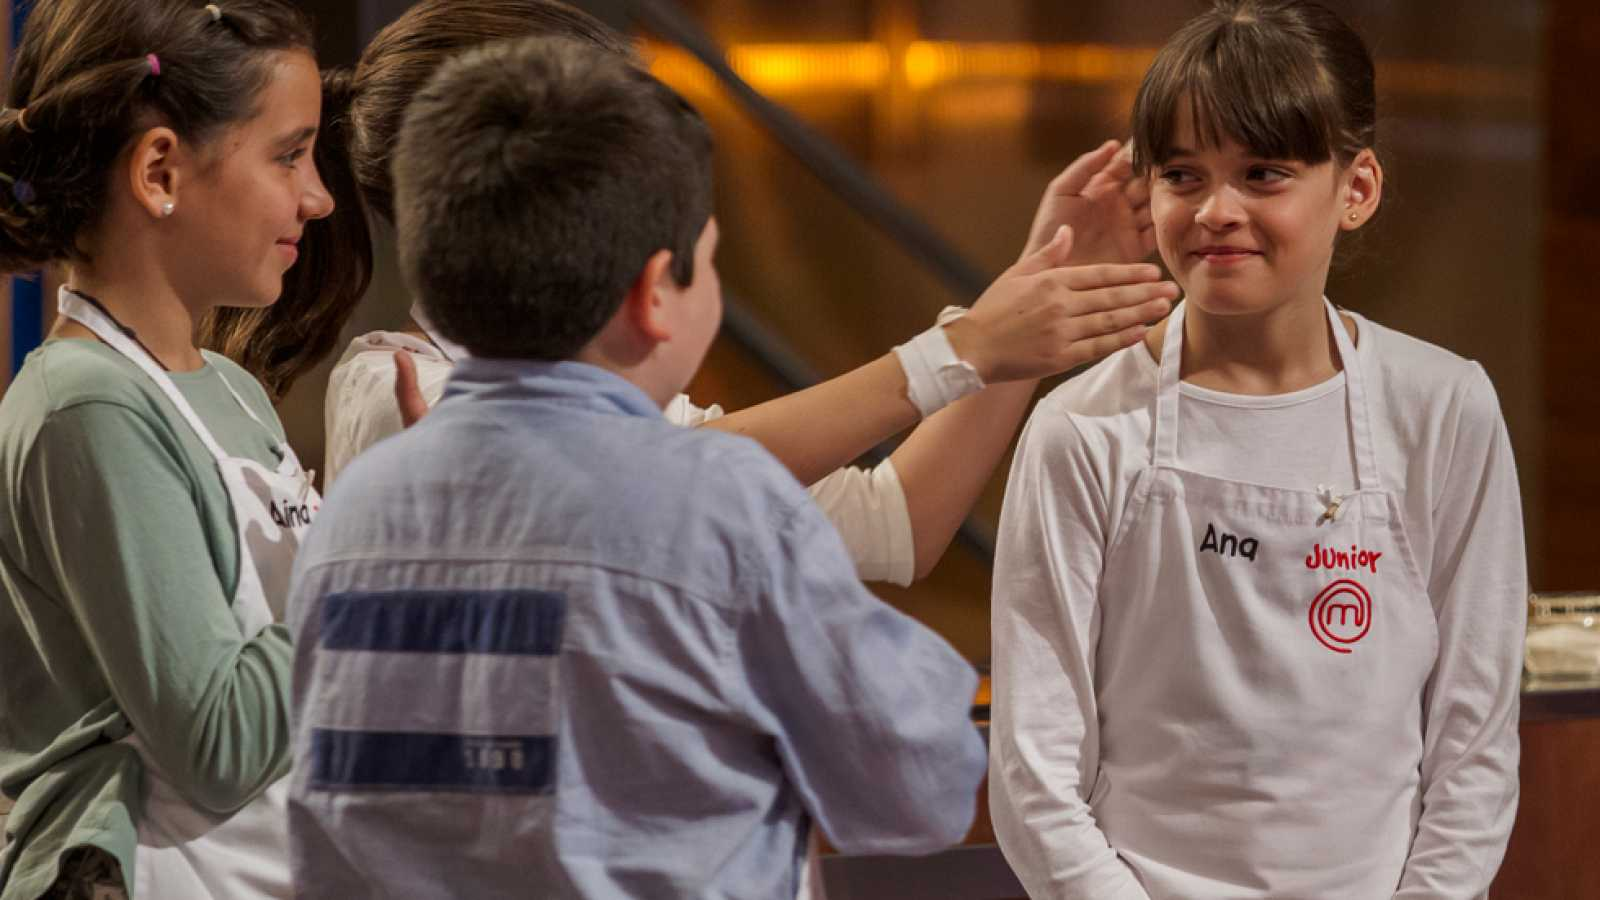 MasterChef Junior 2 - Víctor y Ana, entre los favoritos